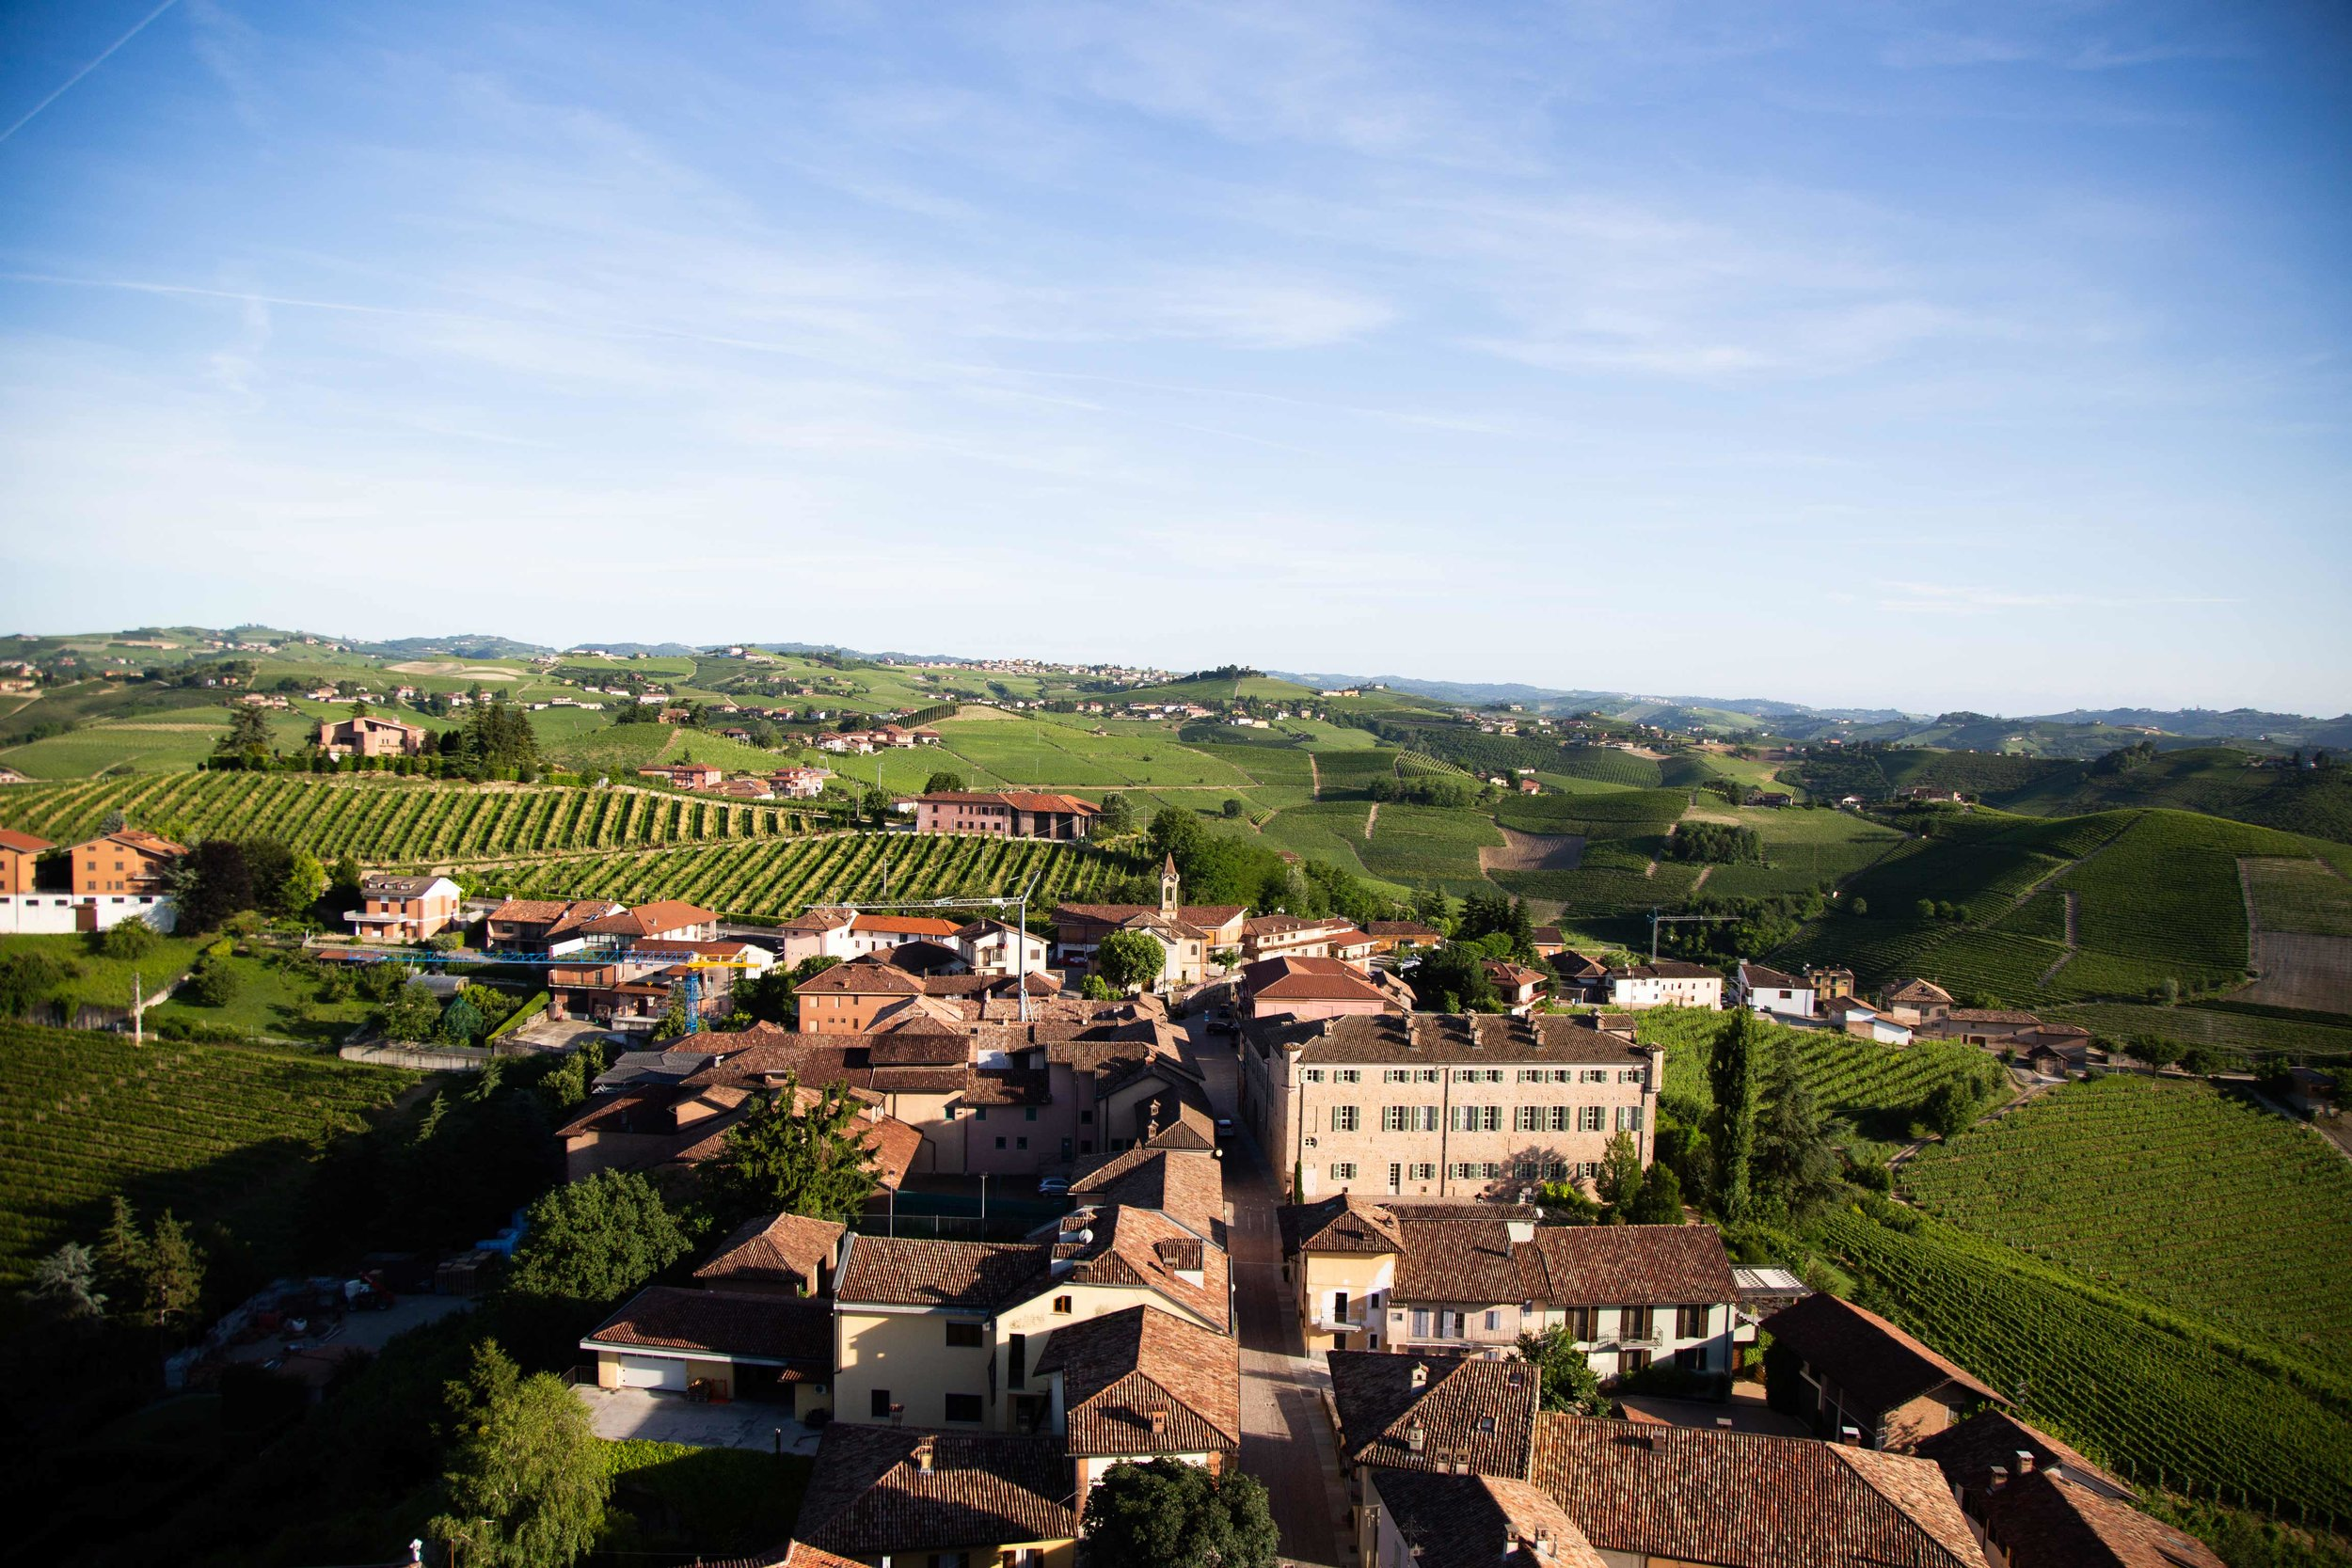 Piedmont UNESCO towns and vistas - Let us take you through the beautiful Barolo, Barbaresco, Langhe & Monferrato hills to discover the medieval castles and towns, while enjoying the unique vistas and panoramas full of world renowned vineyards, hazelnut groves, truffle forests and unsoiled nature part of the UNESCO world heritage.